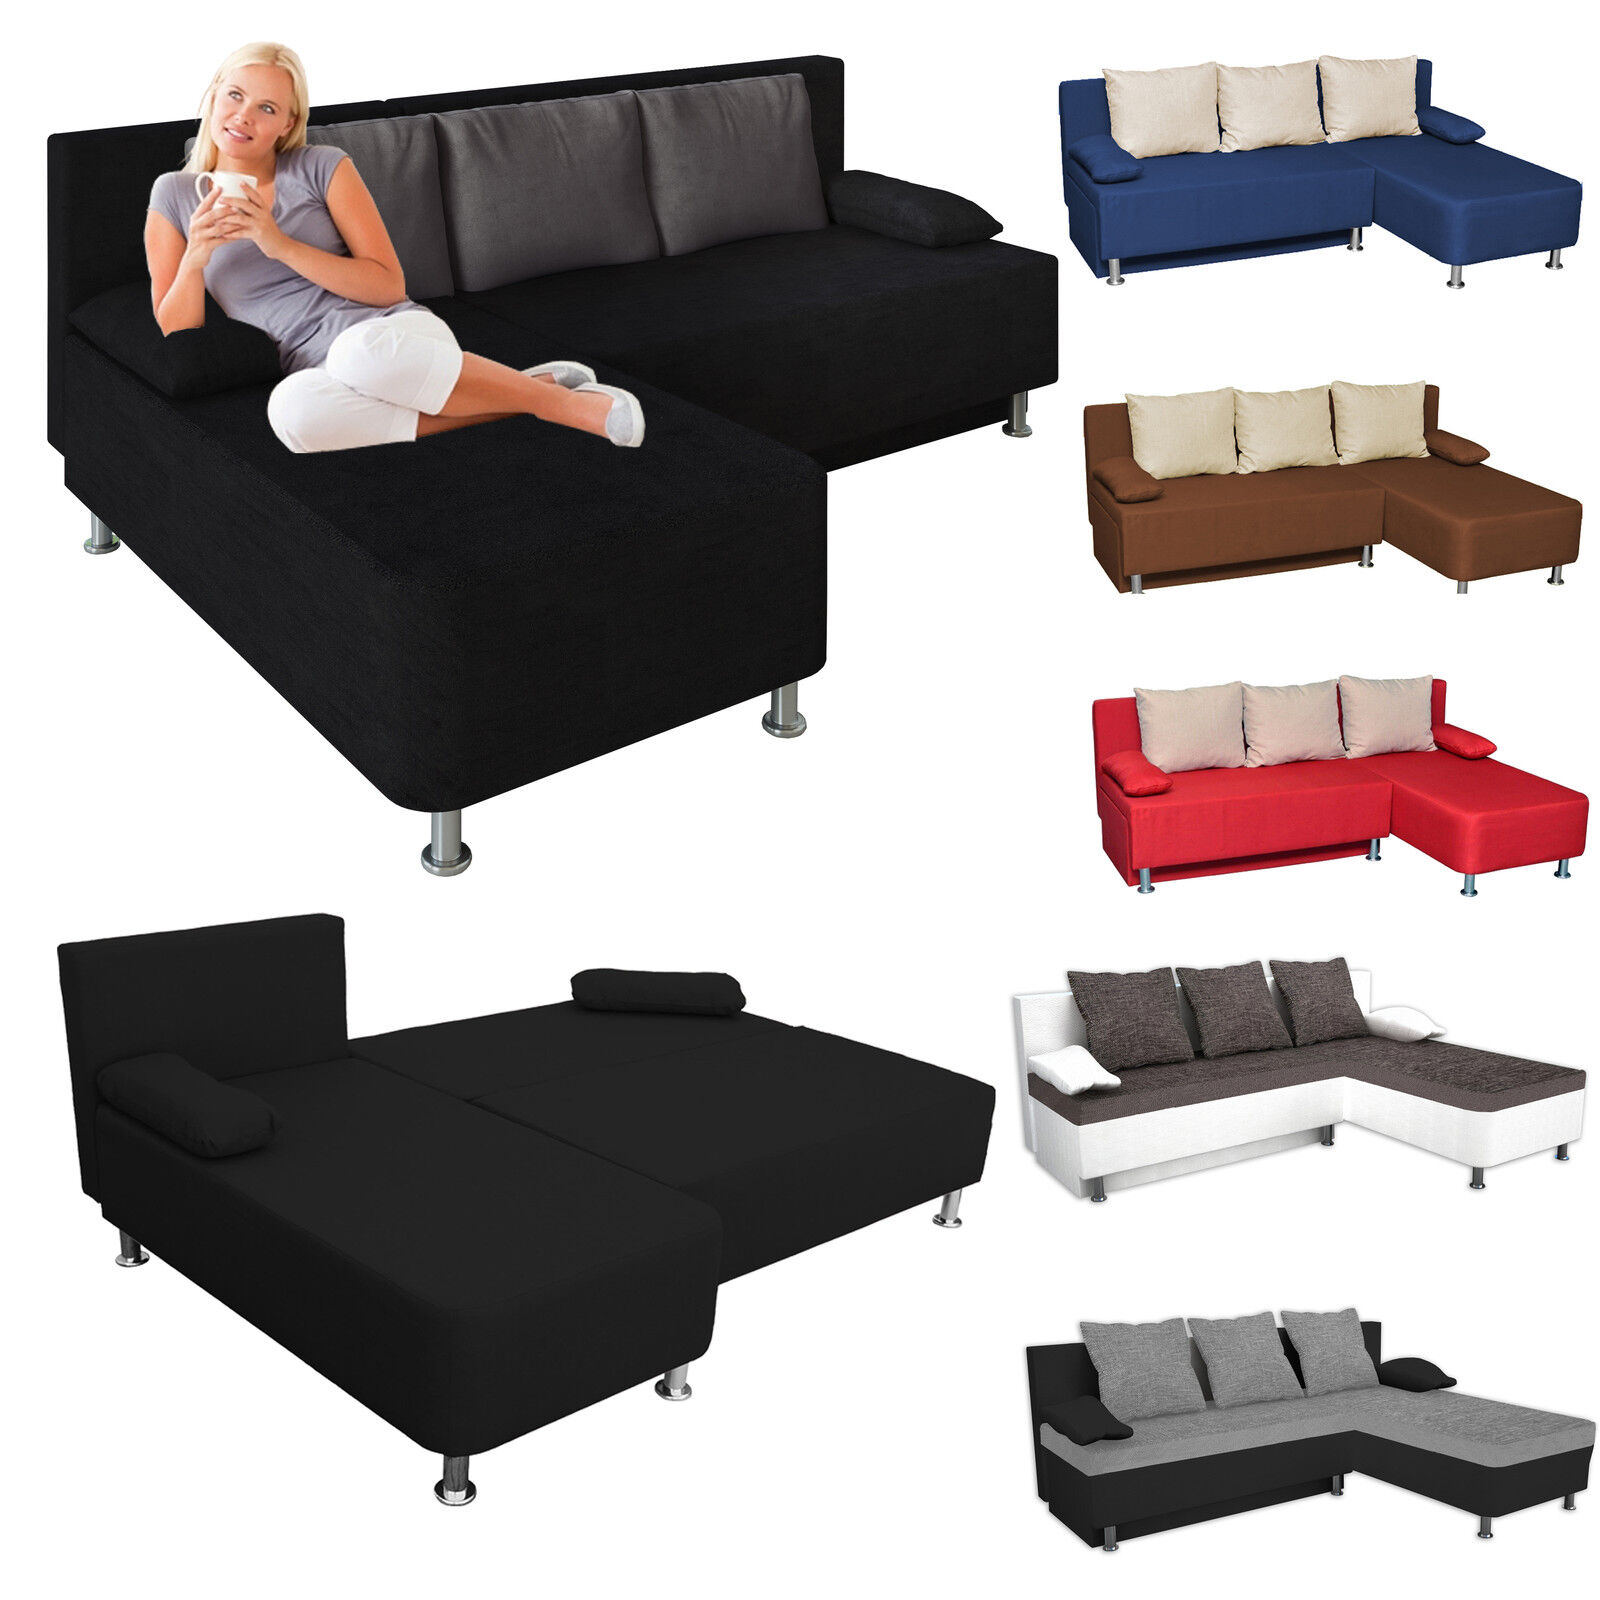 vcm ecksofa schlafsofa sofabett sofa couch mit. Black Bedroom Furniture Sets. Home Design Ideas